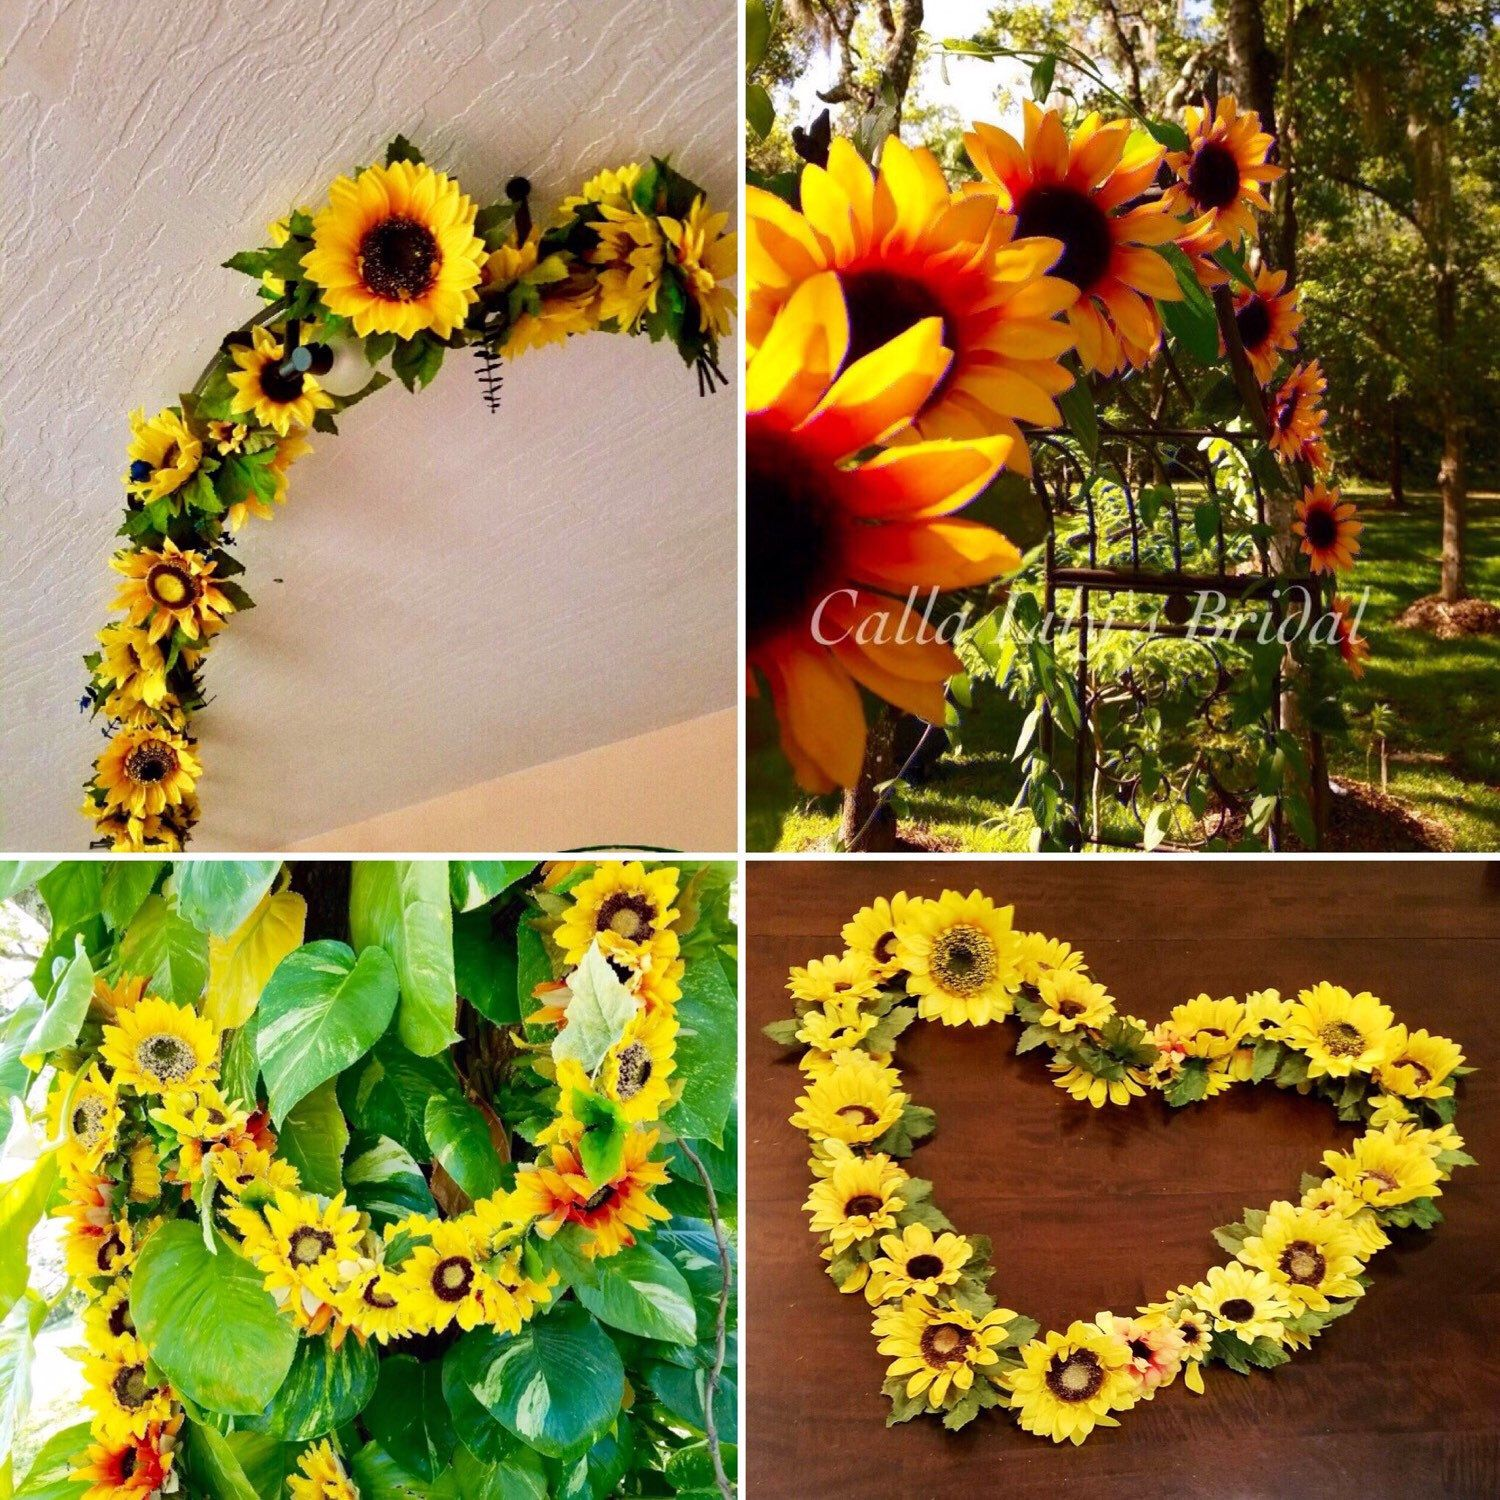 Only one awesome sunflower wedding arch swag left!!!! On